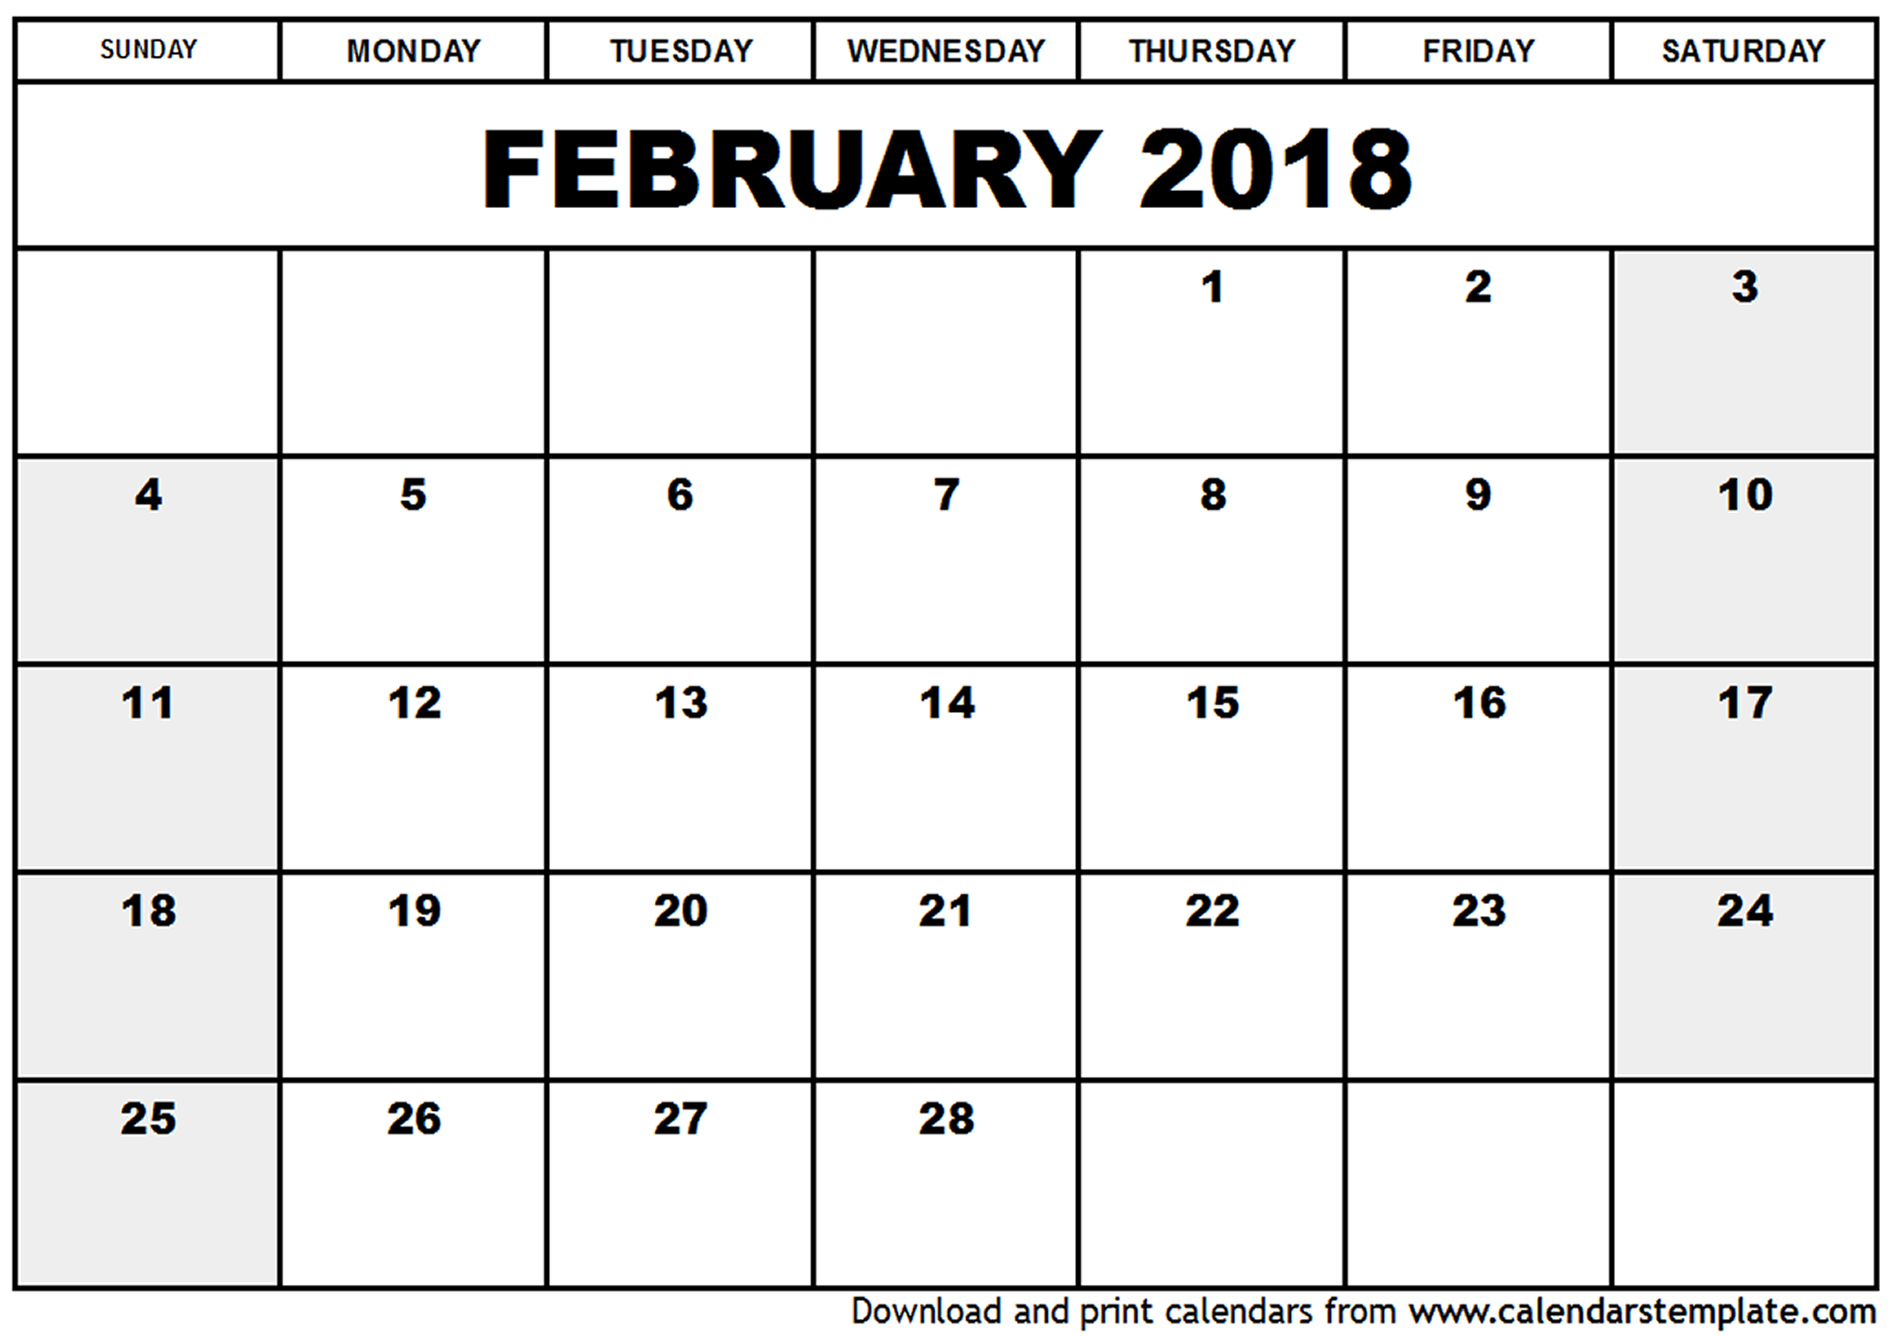 Download free February 2018 calendar printable